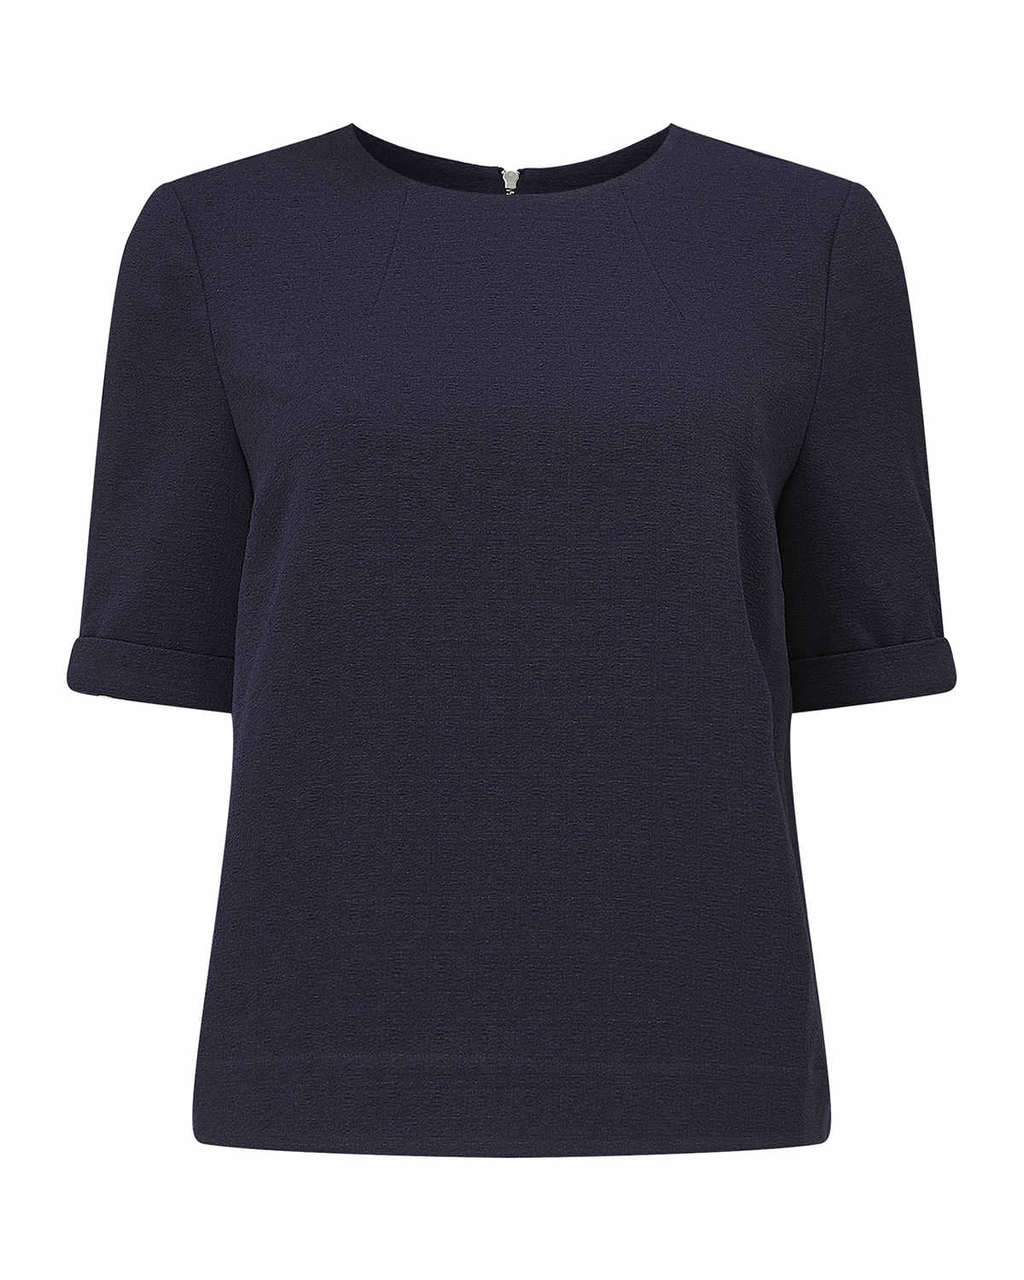 Dalia Crepe Zip Back Top - pattern: plain; style: t-shirt; predominant colour: navy; length: standard; fibres: polyester/polyamide - 100%; fit: straight cut; neckline: crew; sleeve length: short sleeve; sleeve style: standard; texture group: crepes; pattern type: fabric; occasions: creative work; season: s/s 2016; wardrobe: basic